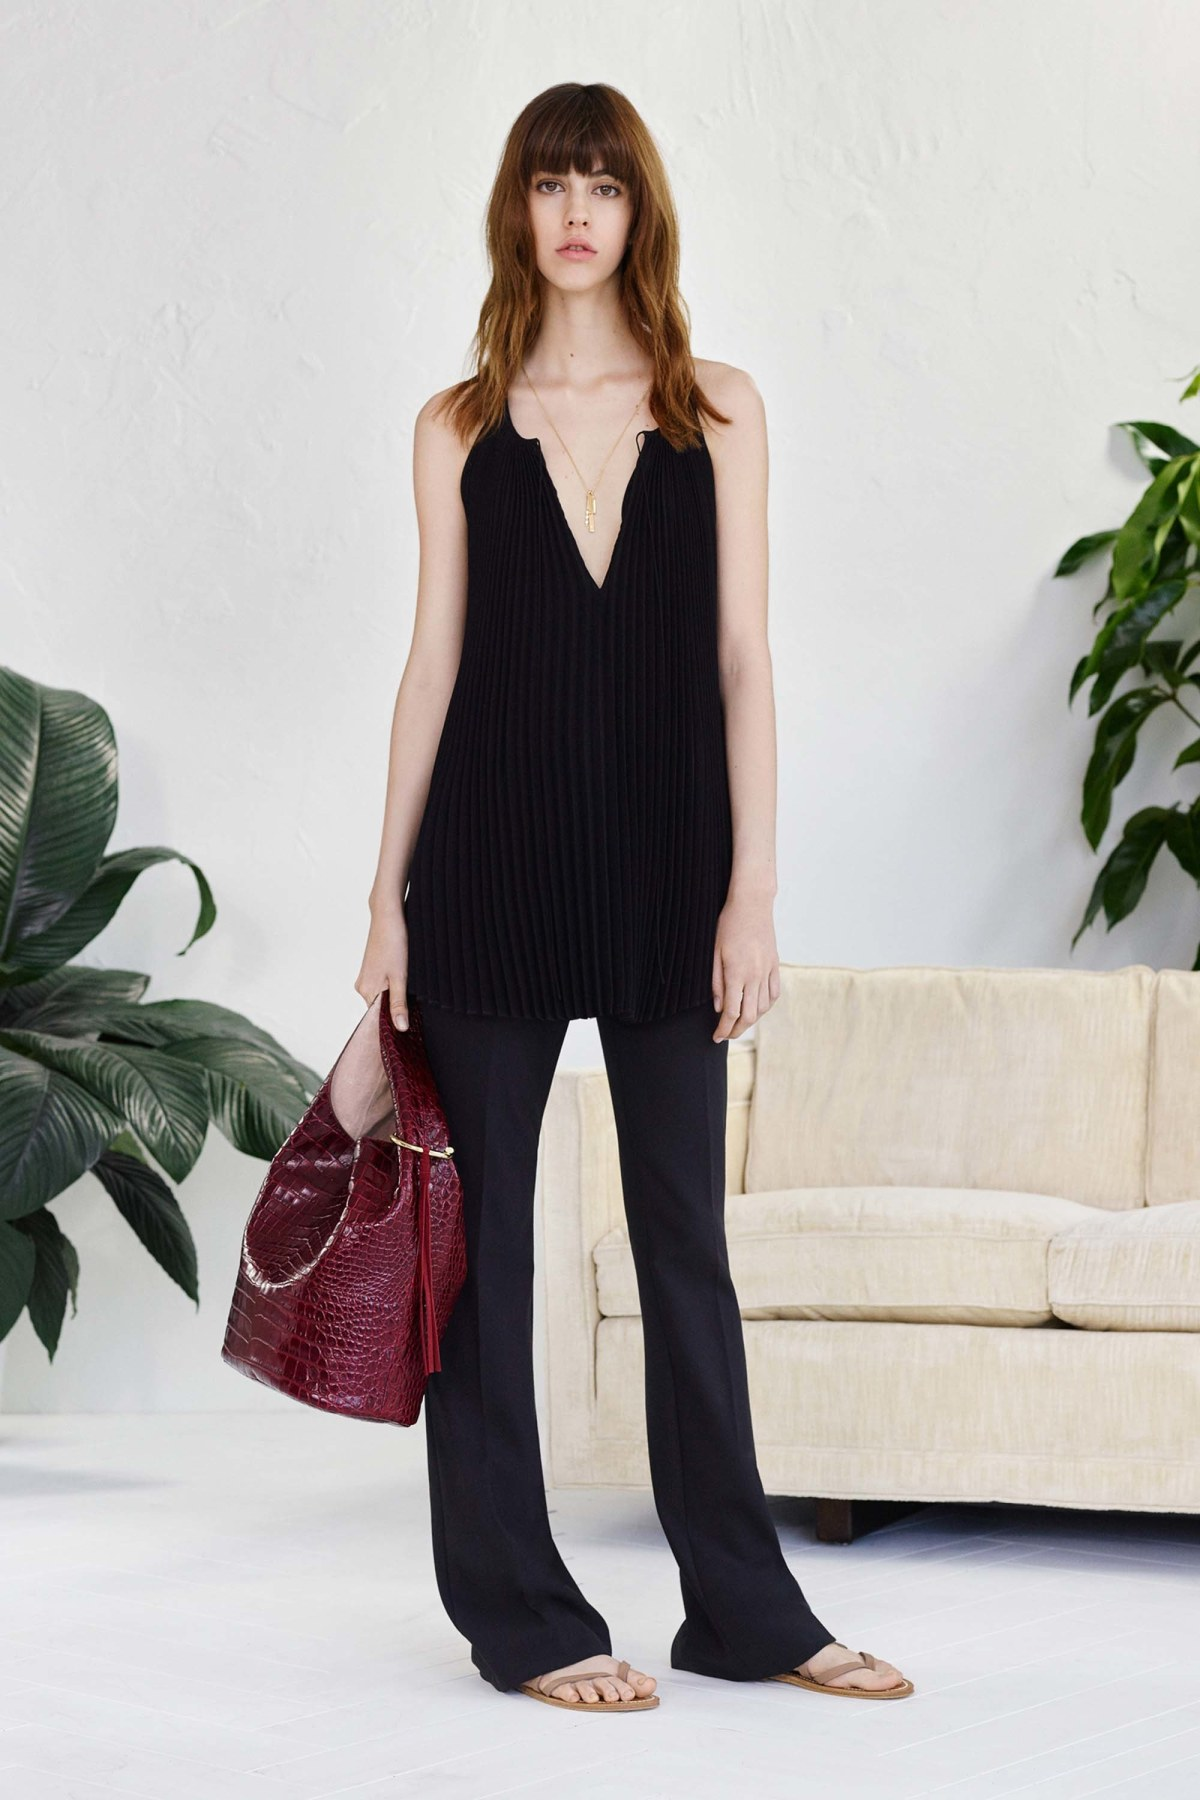 elizabeth-james-resort-2017-the-impression-004